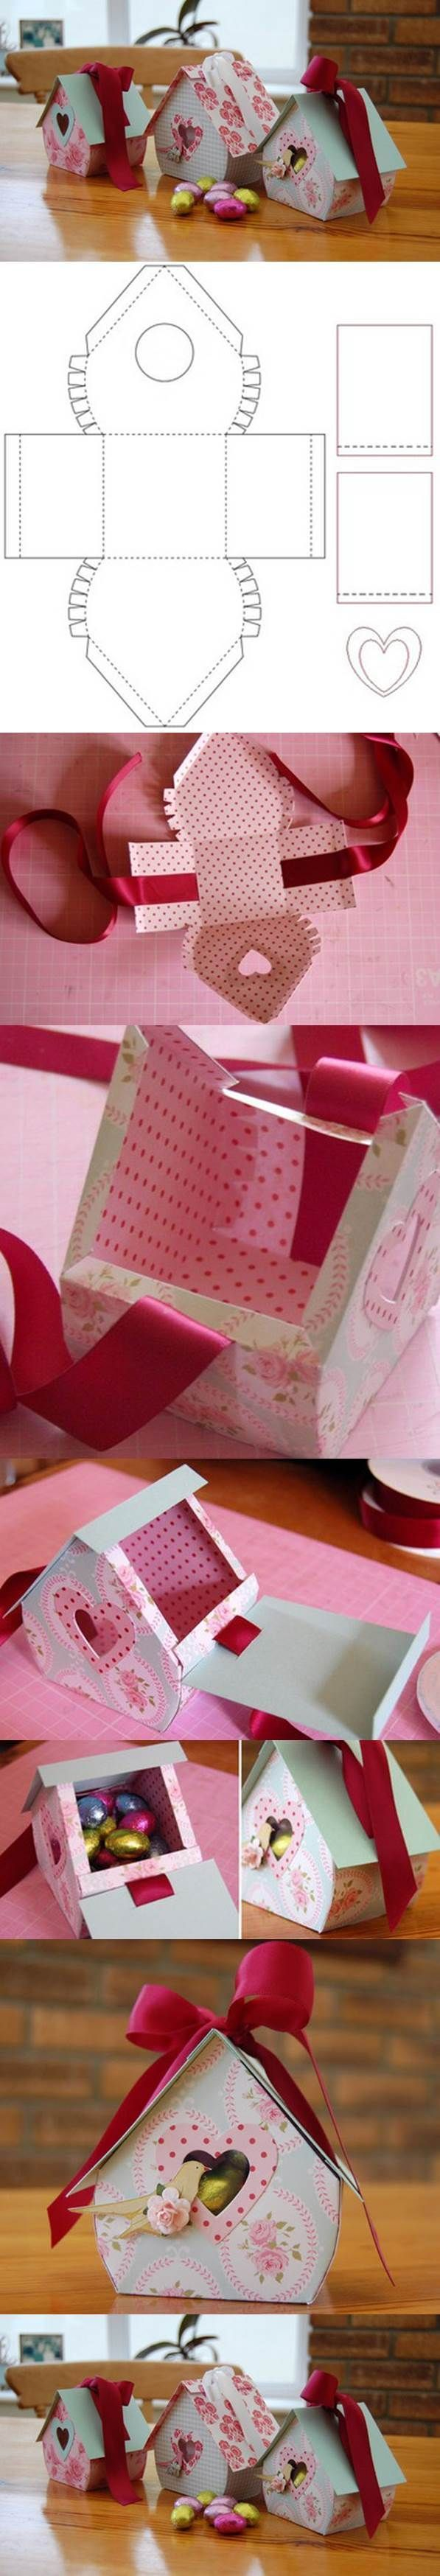 DIY-Bird-Nest-Gift-Box-2 http://www.womans-heaven.com/diy-and-crafts-image-12/